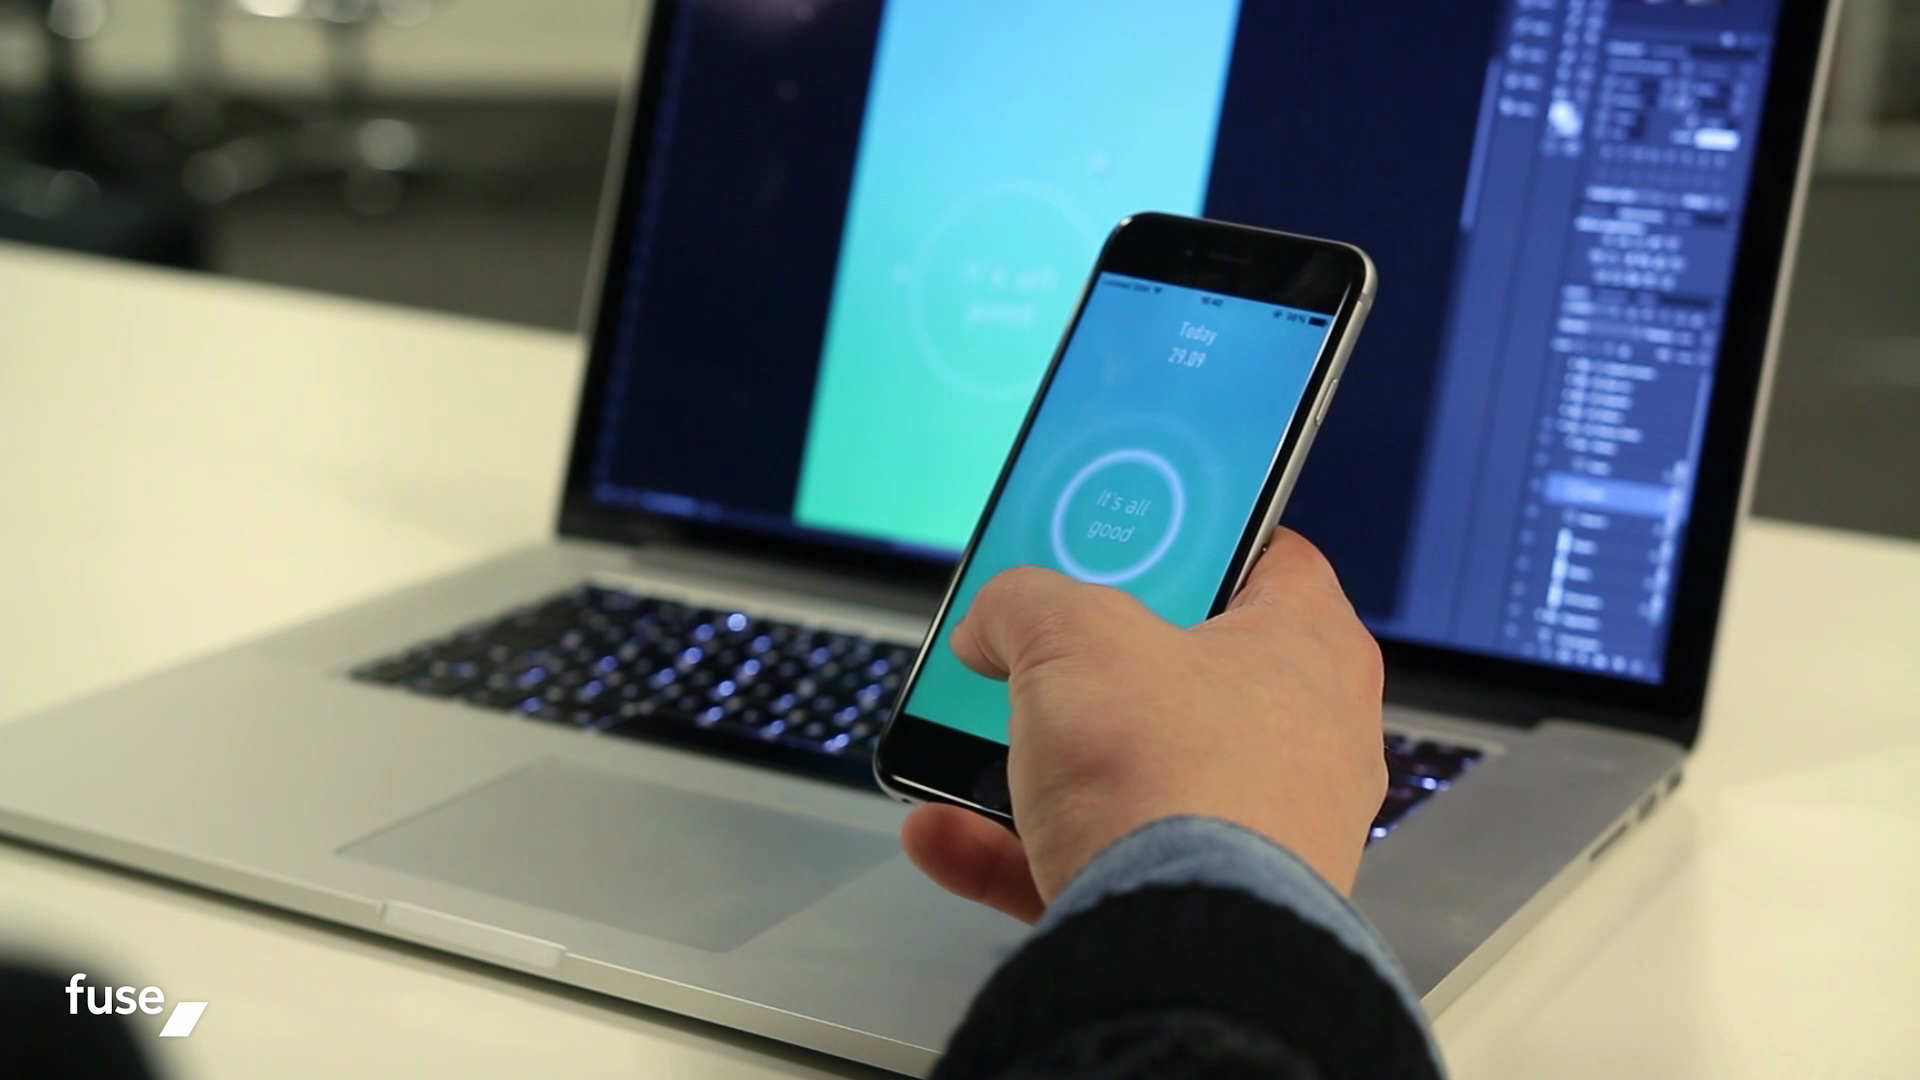 fuse has built a mobile app dev platform that merges the worlds of design and development